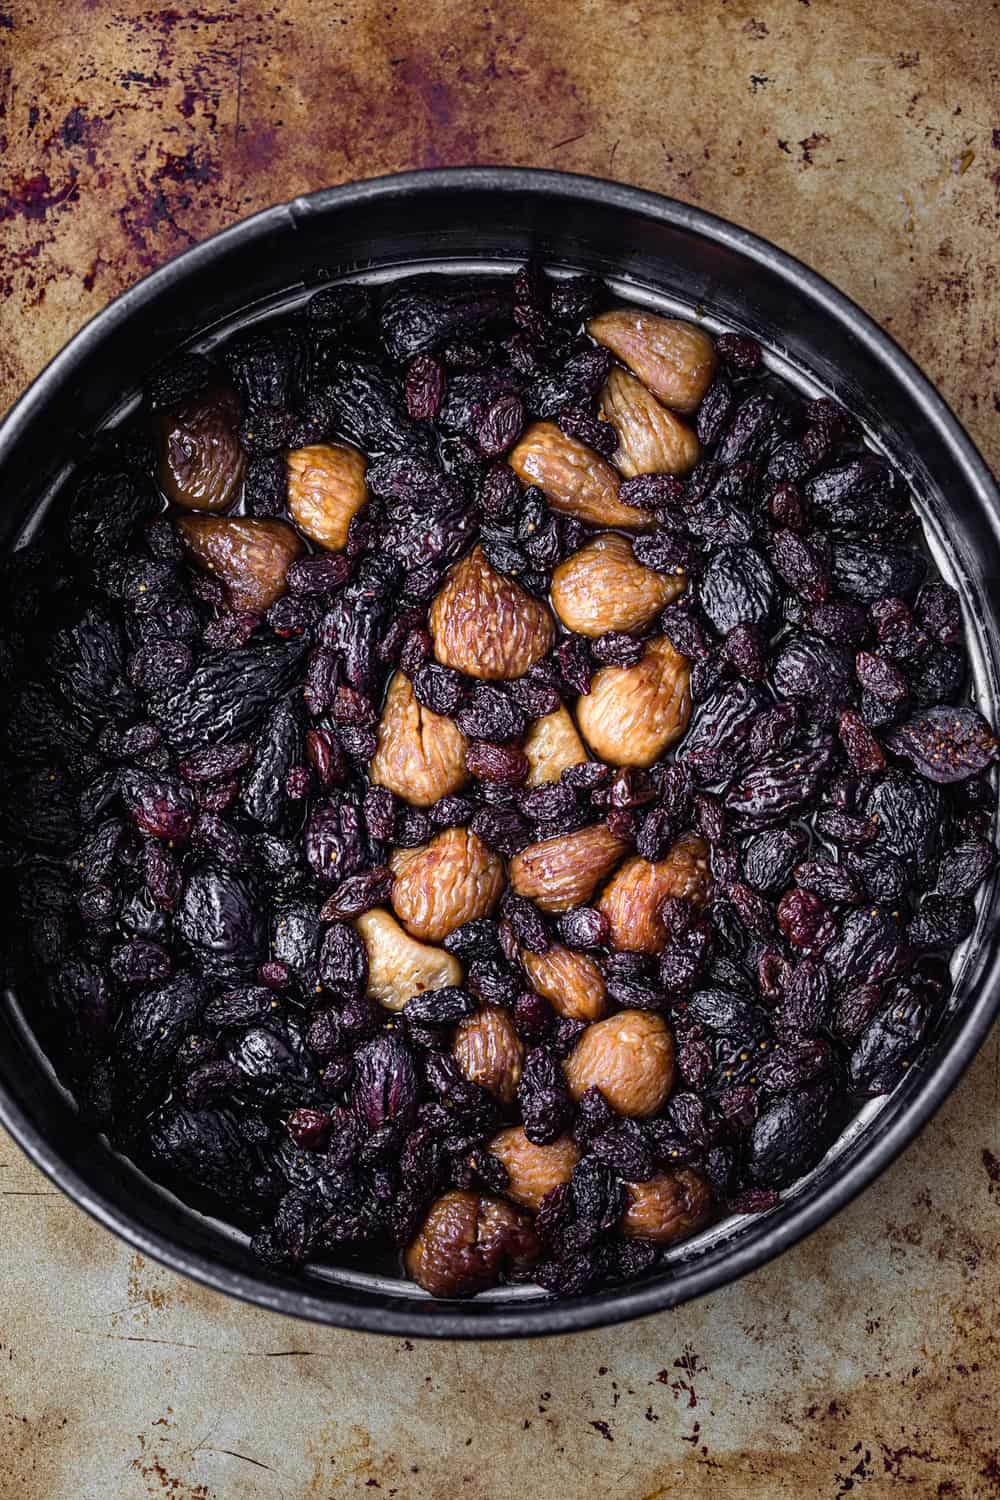 Dried figs and raisons arranged on top of caramel on springform pan; overhead shot.